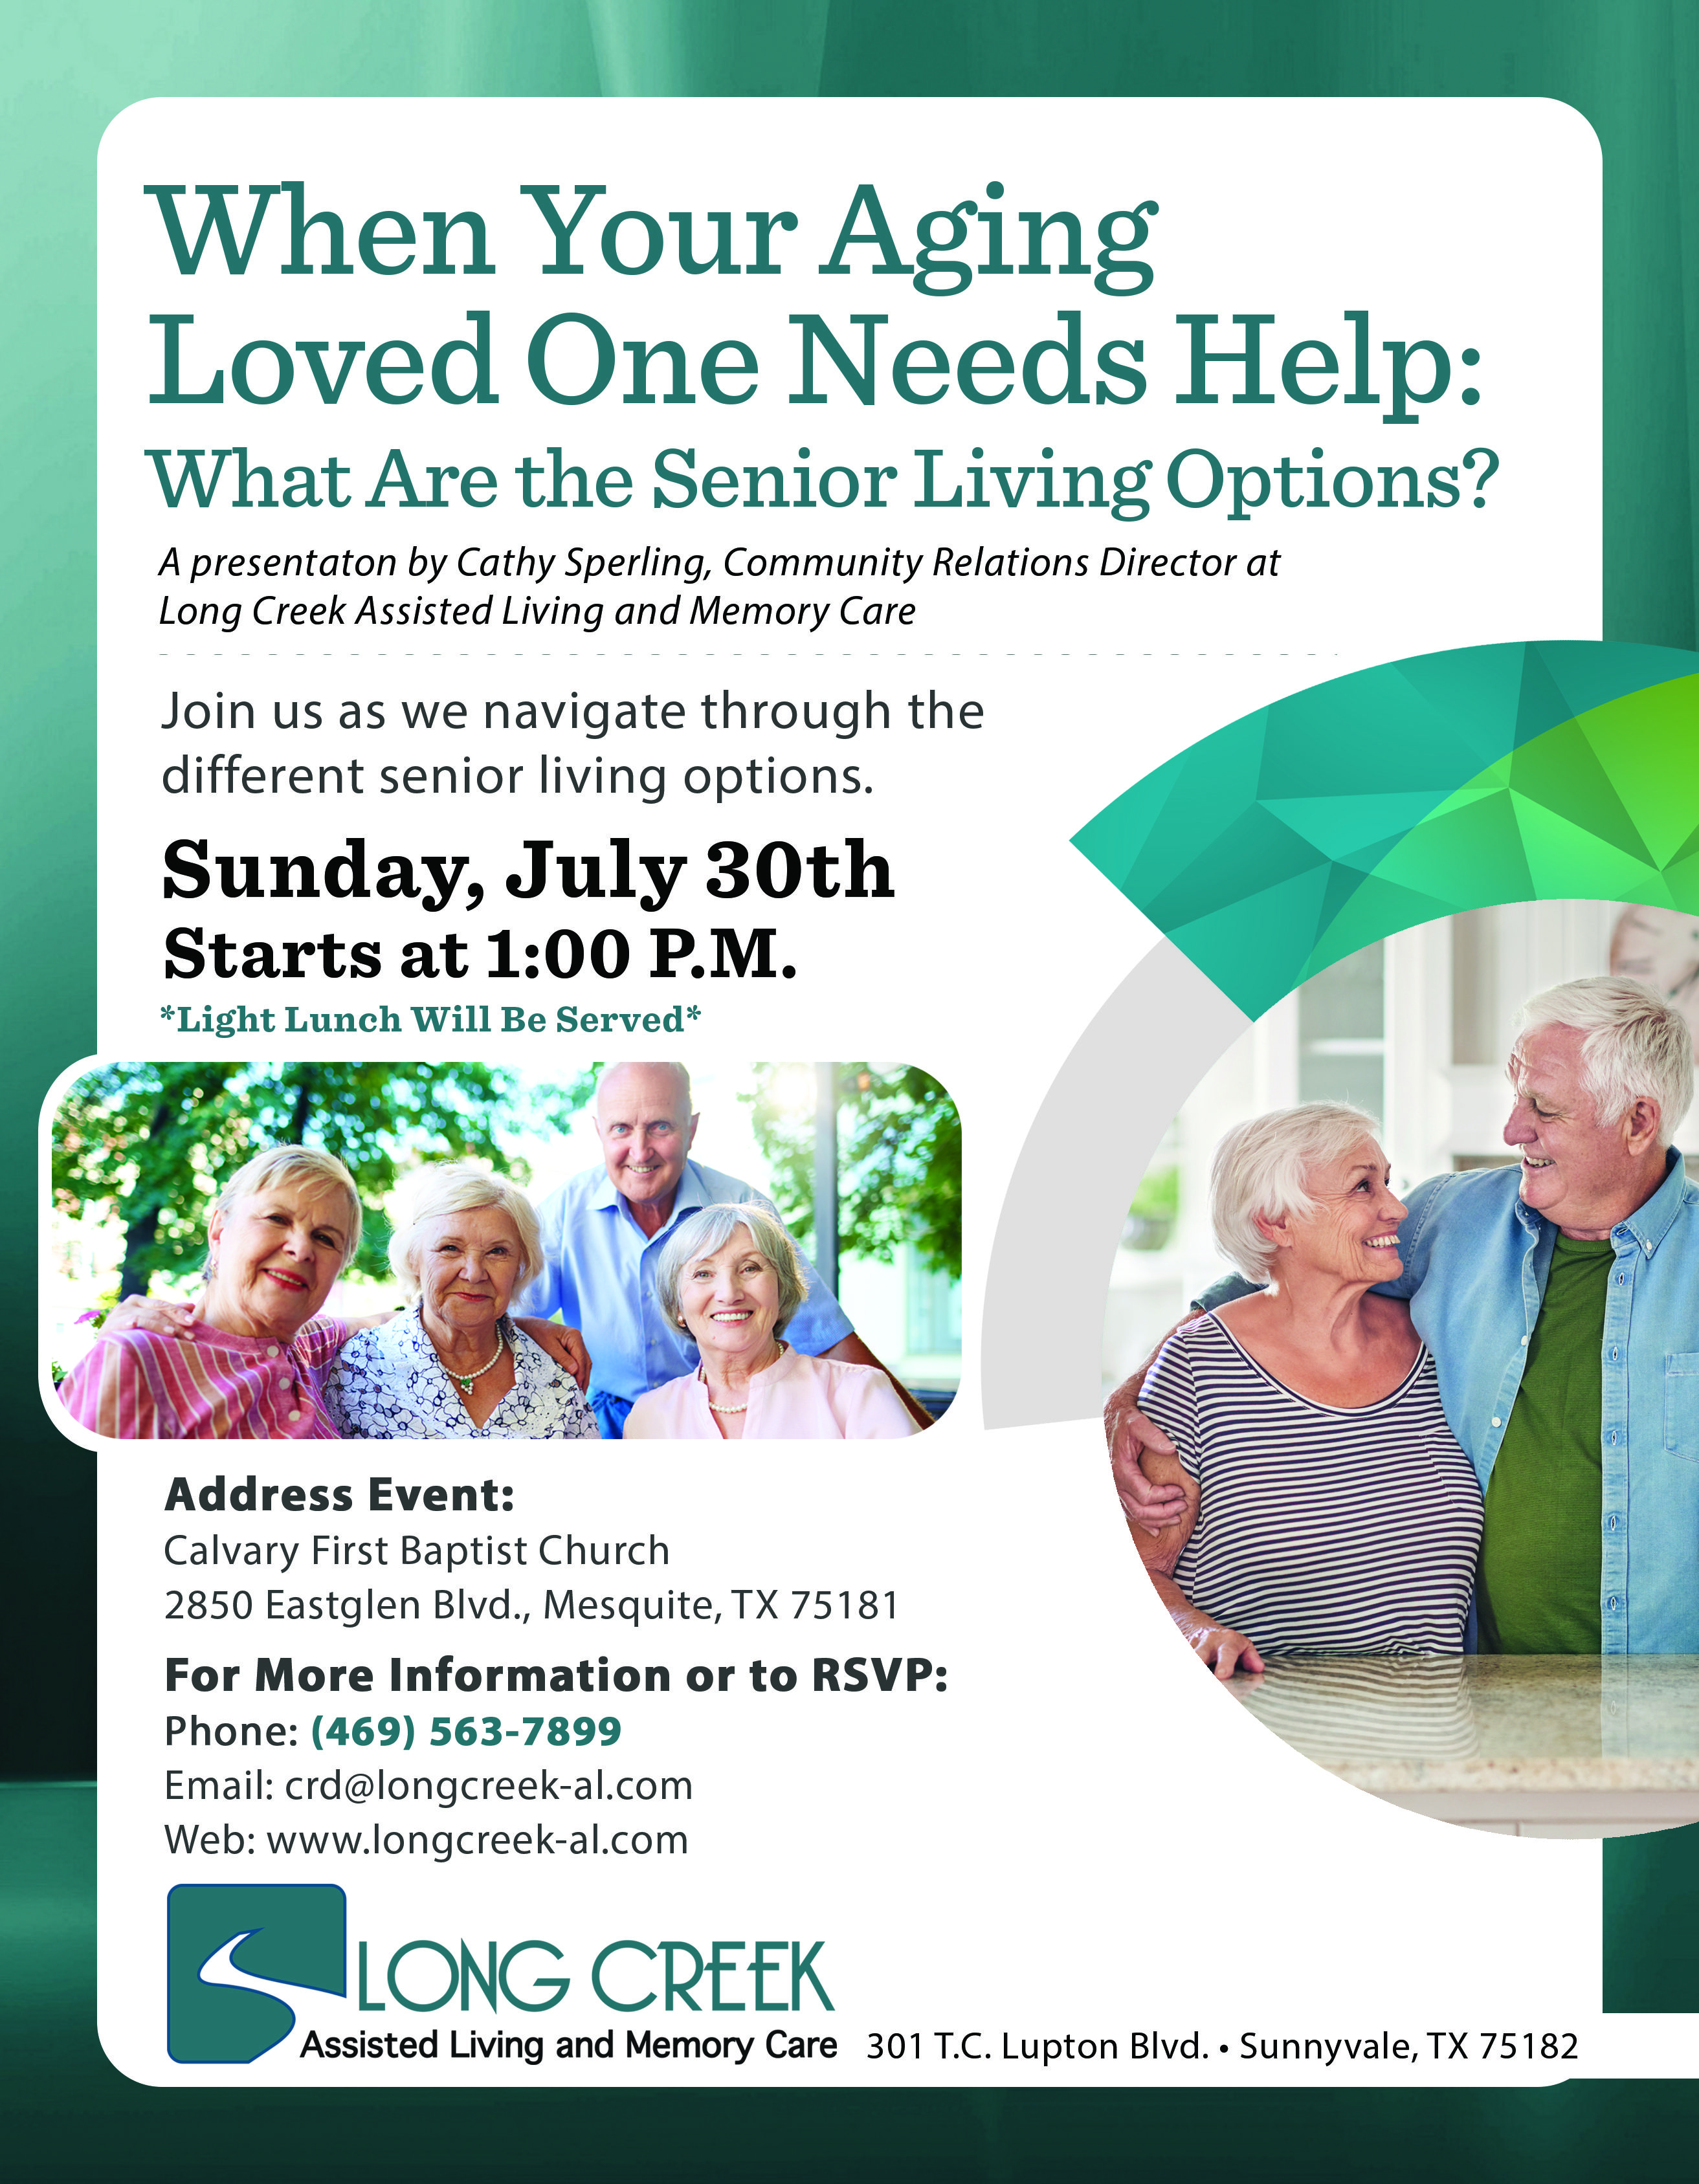 Upcoming Event At Long Creek Assisted Living And Memory Care In Sunnyvale Texas Senior Living Event On Senior Living Marketing Senior Living Senior Activities